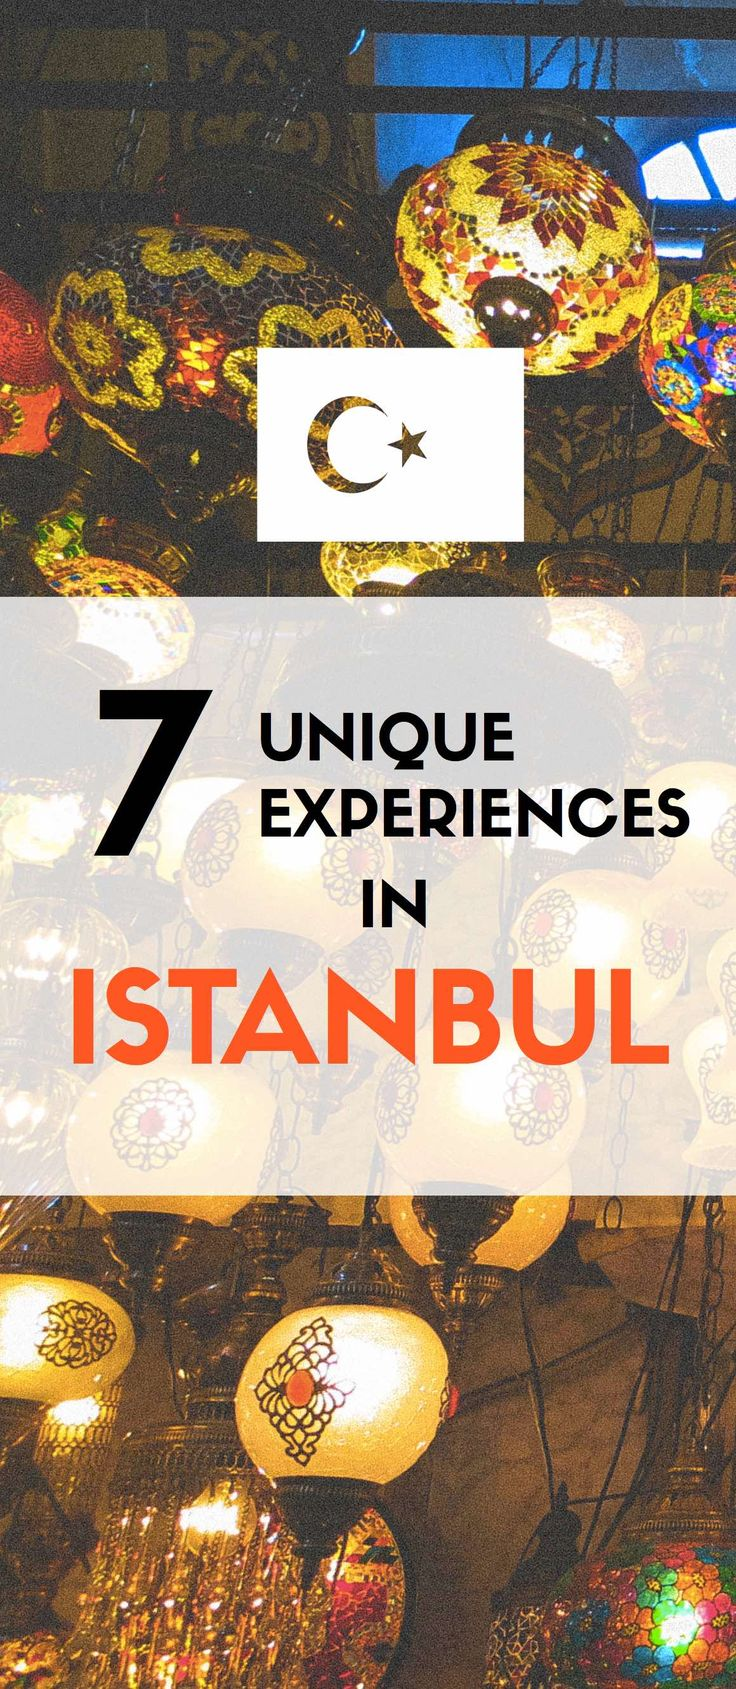 Unique Things To Do In An Unique City. The #Hamam experience was unforgetable for me!  #istanbul #turkey #turkiye @visitturkey